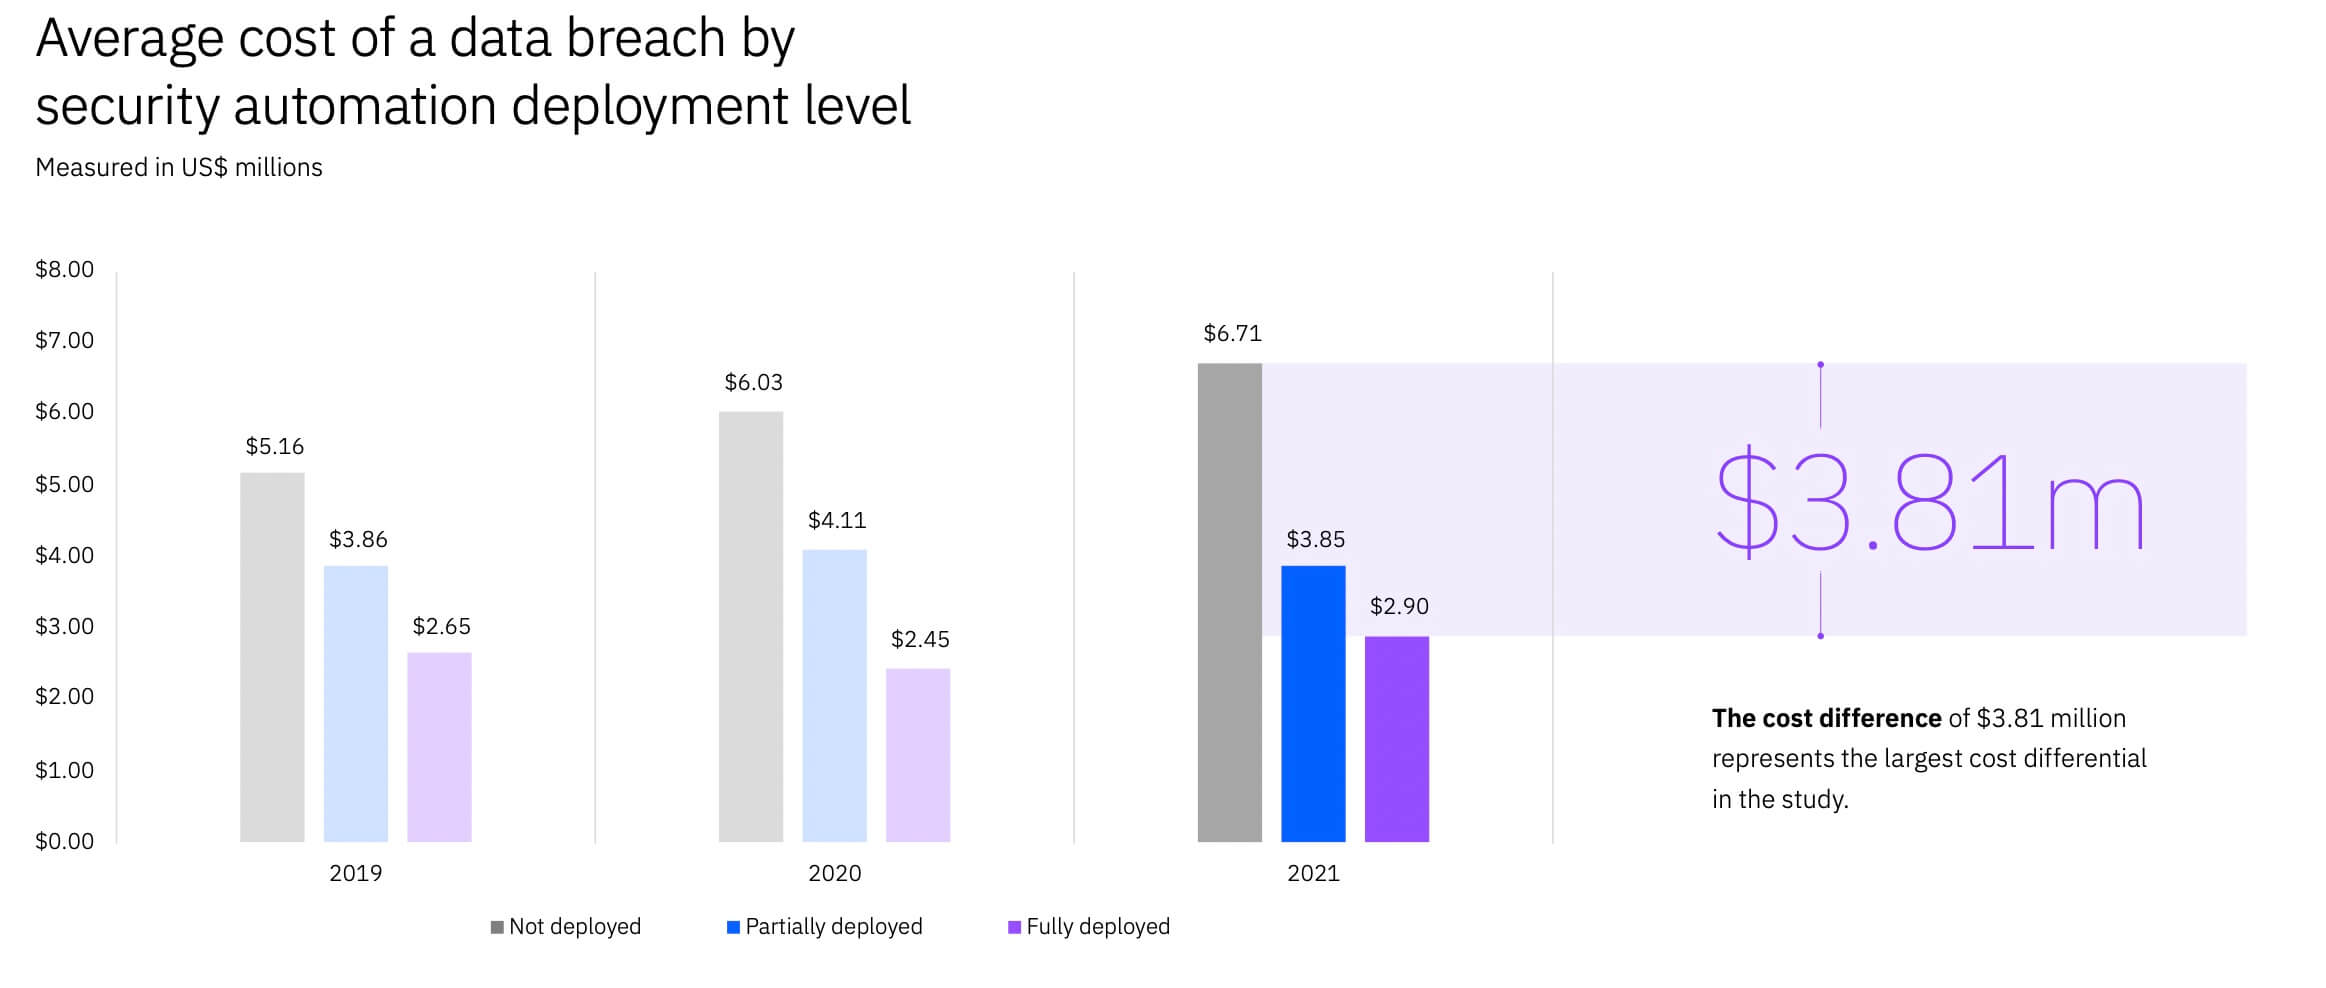 average cost of a data breach by security automation deployment level